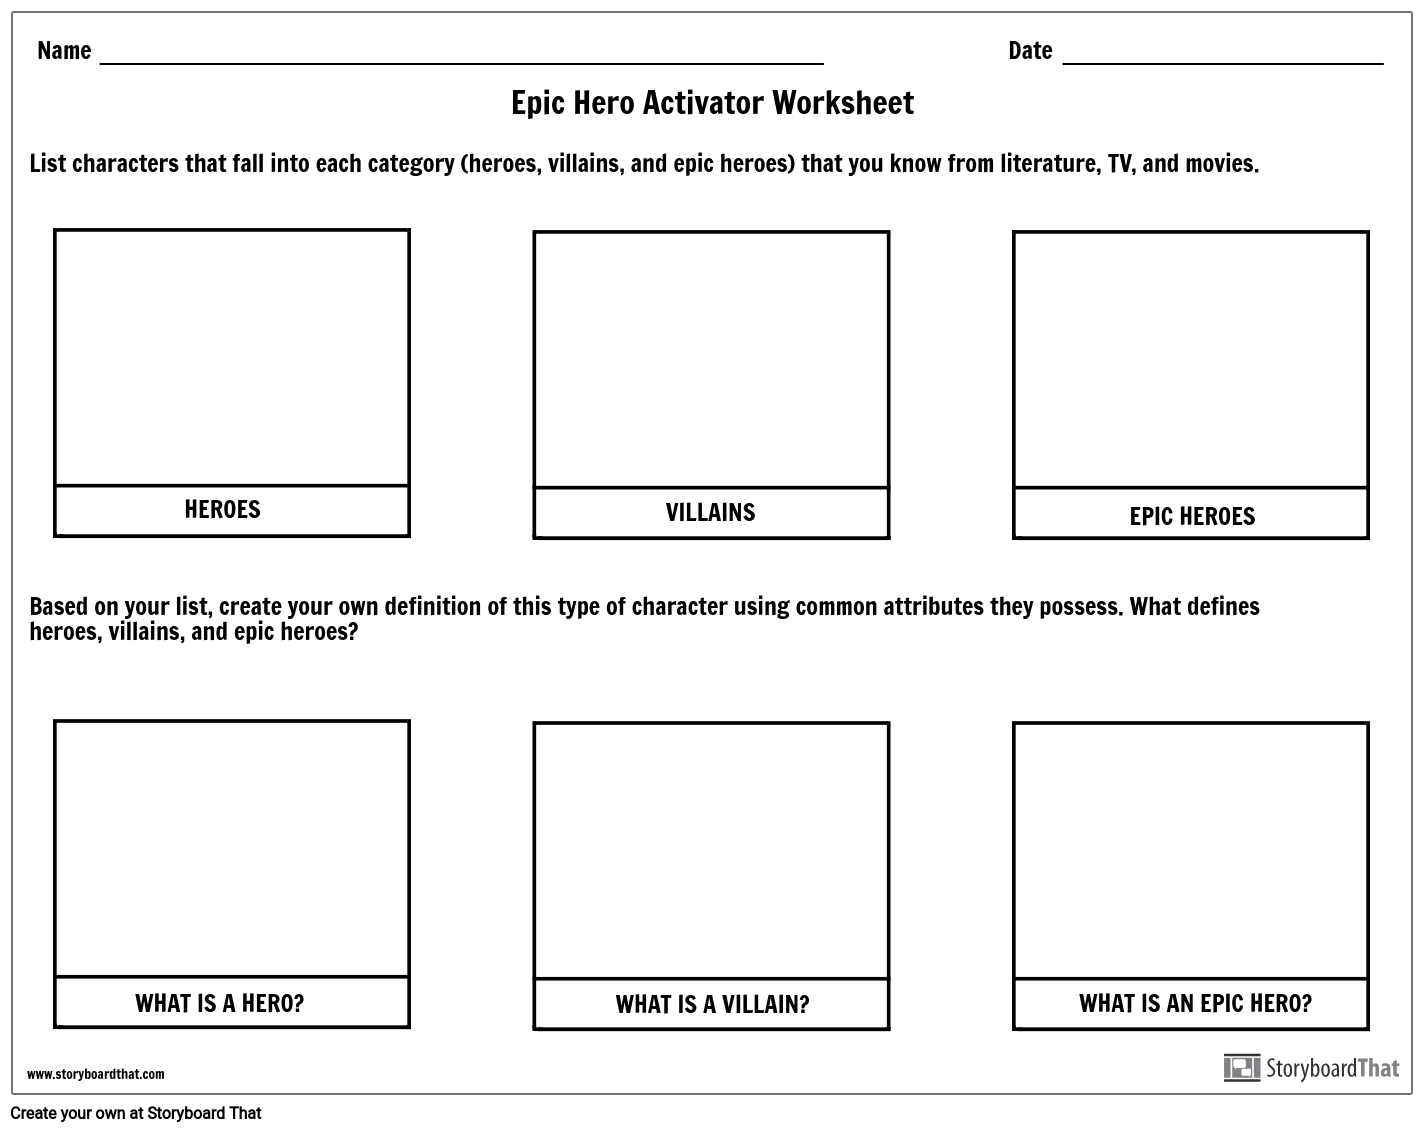 Epic Hero Definition Examples Characteristics Of An Epic